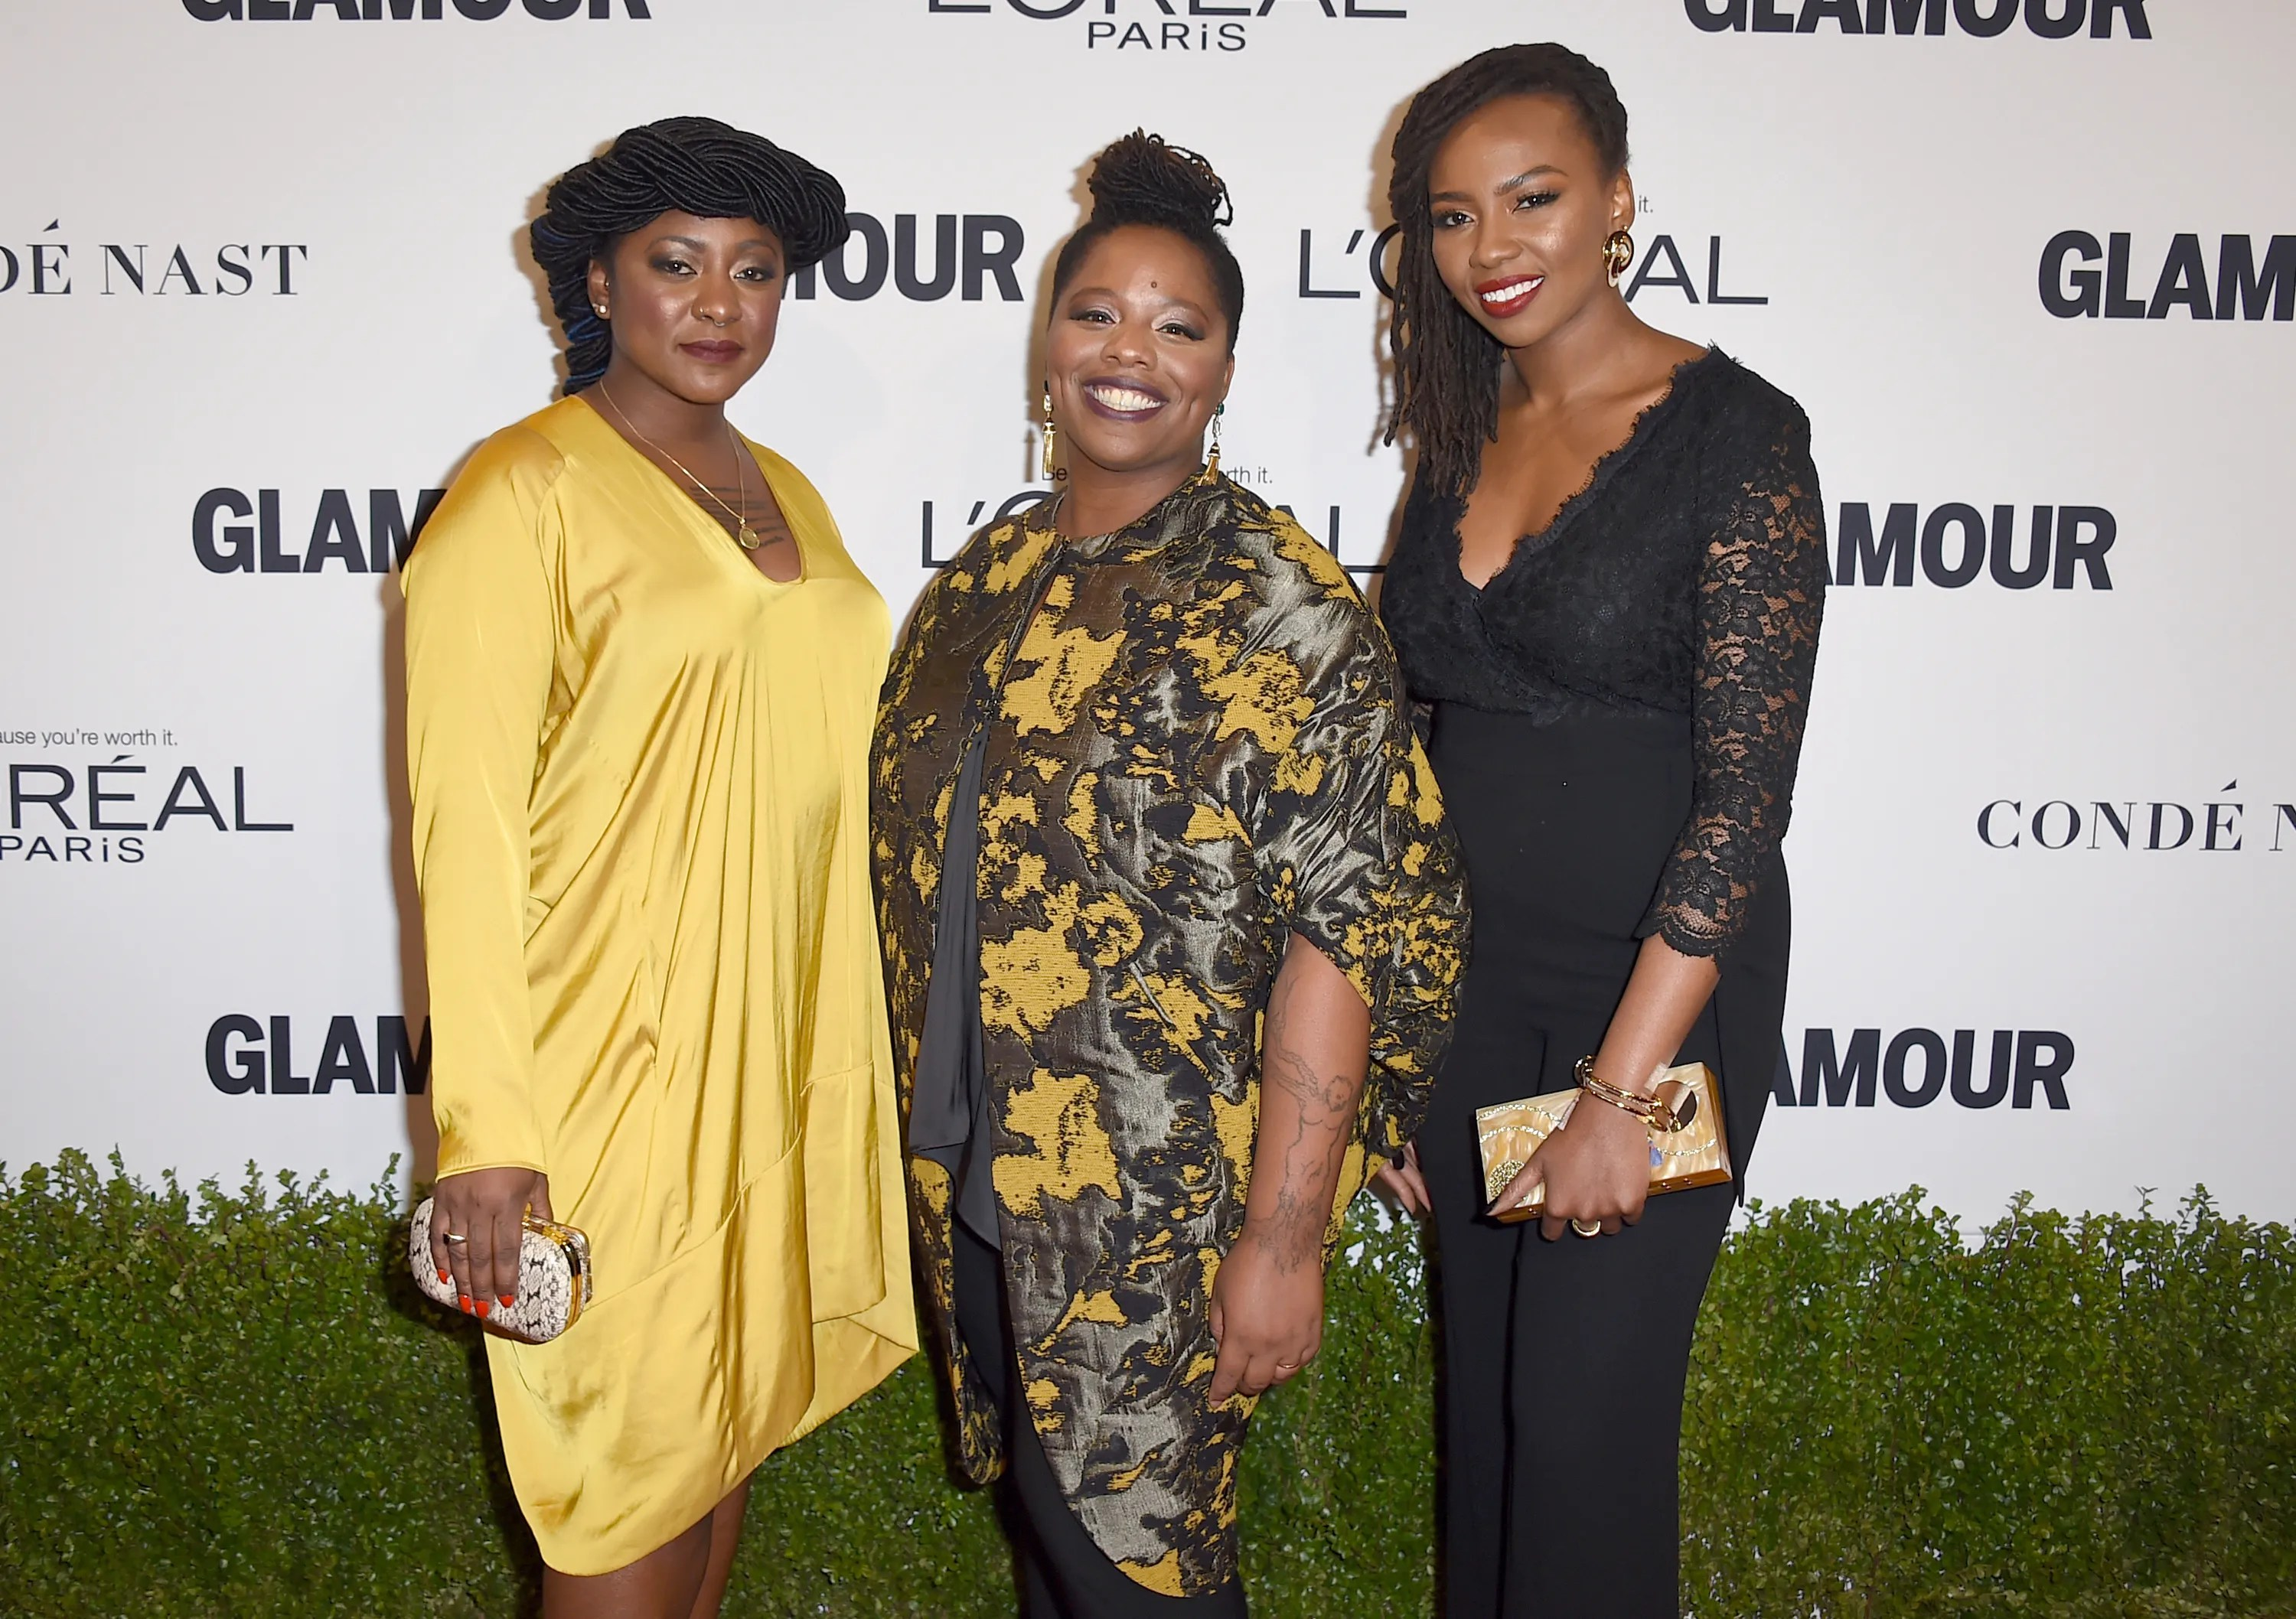 Alicia Garza, from left, Patrisse Cullors and Opal Tometi, co-founders of the Black Lives Matter movement, arrive at the Glamour Women of the Year Awards at NeueHouse Hollywood on Monday, Nov. 14, 2016, in Los Angeles.